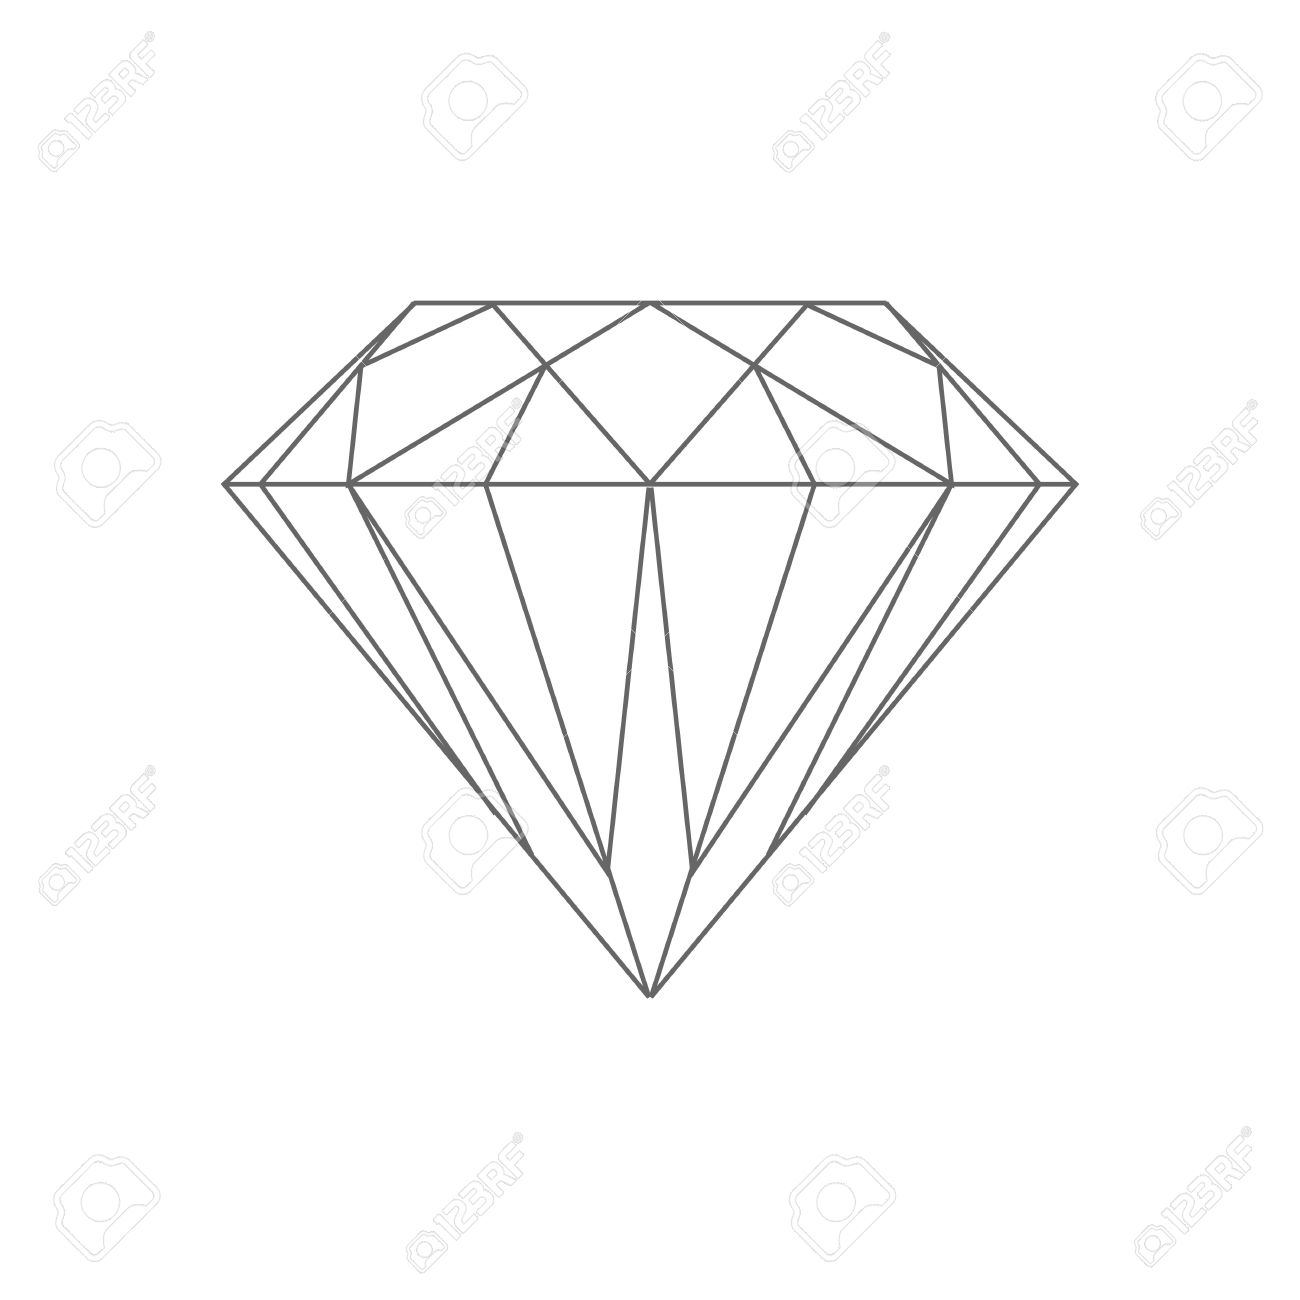 Line Drawing Diamond : Diamond drawing at getdrawings free for personal use